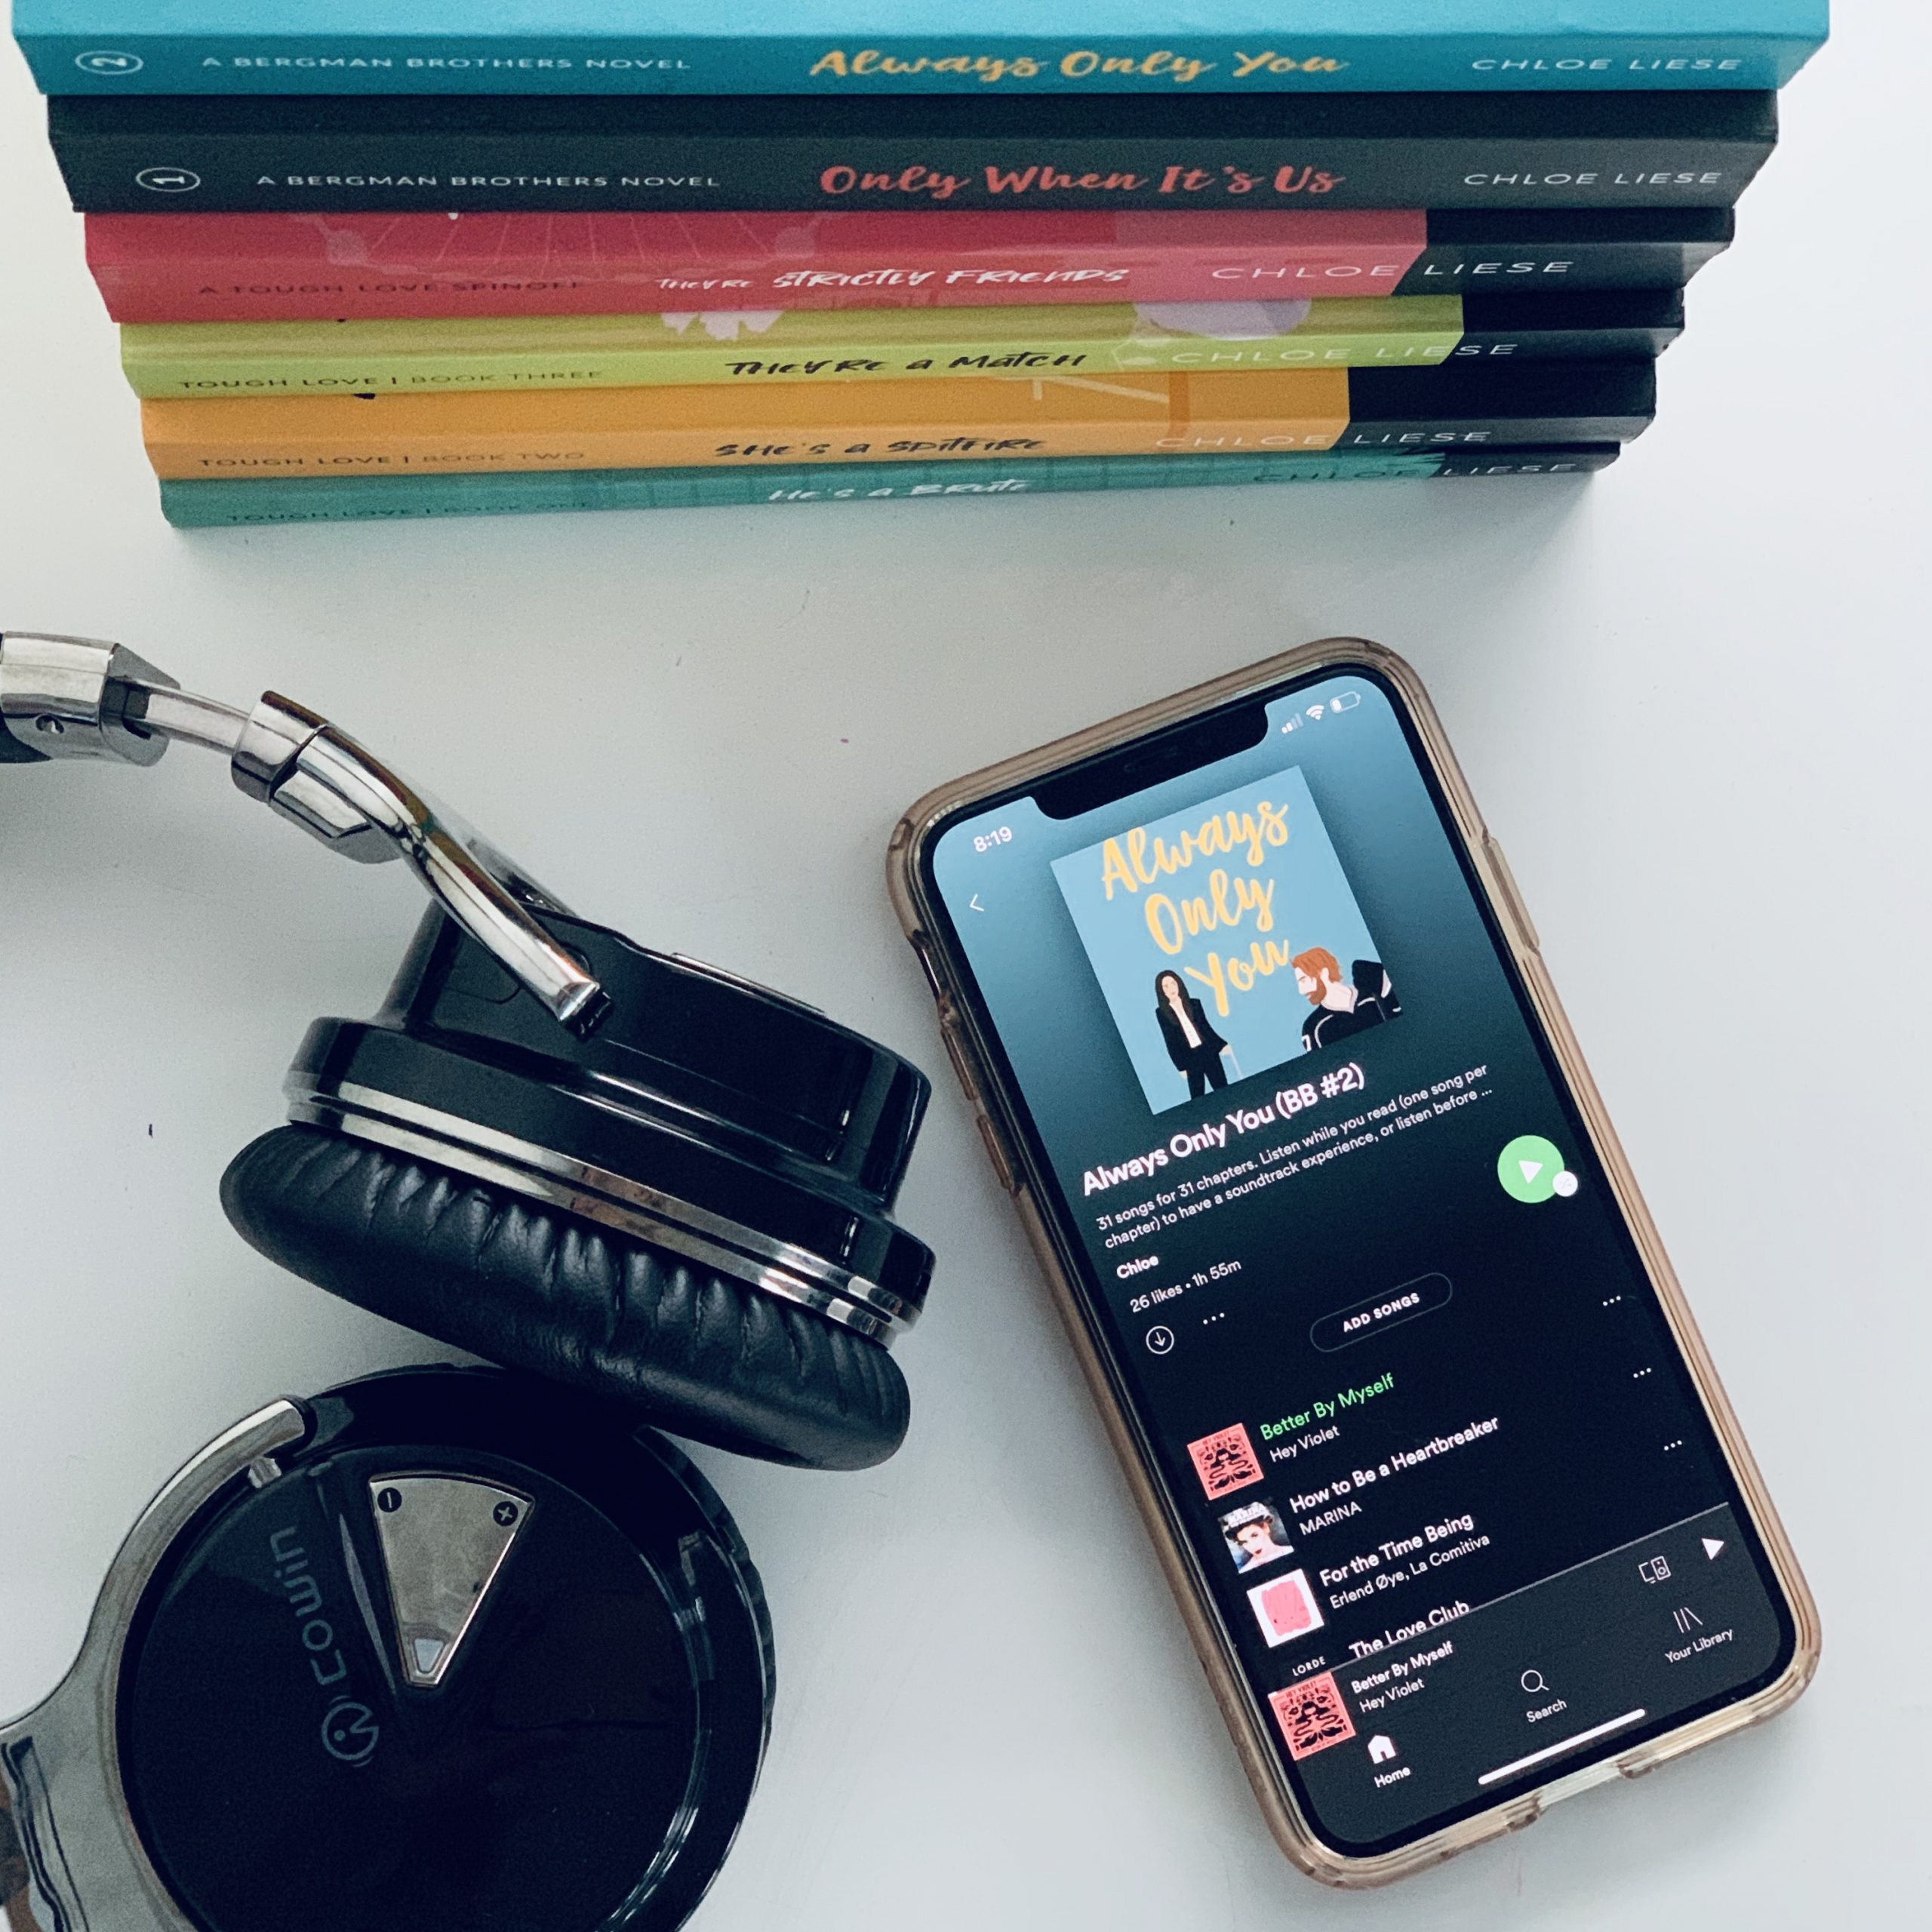 Chloe Liese book covers with iphone and earbuds